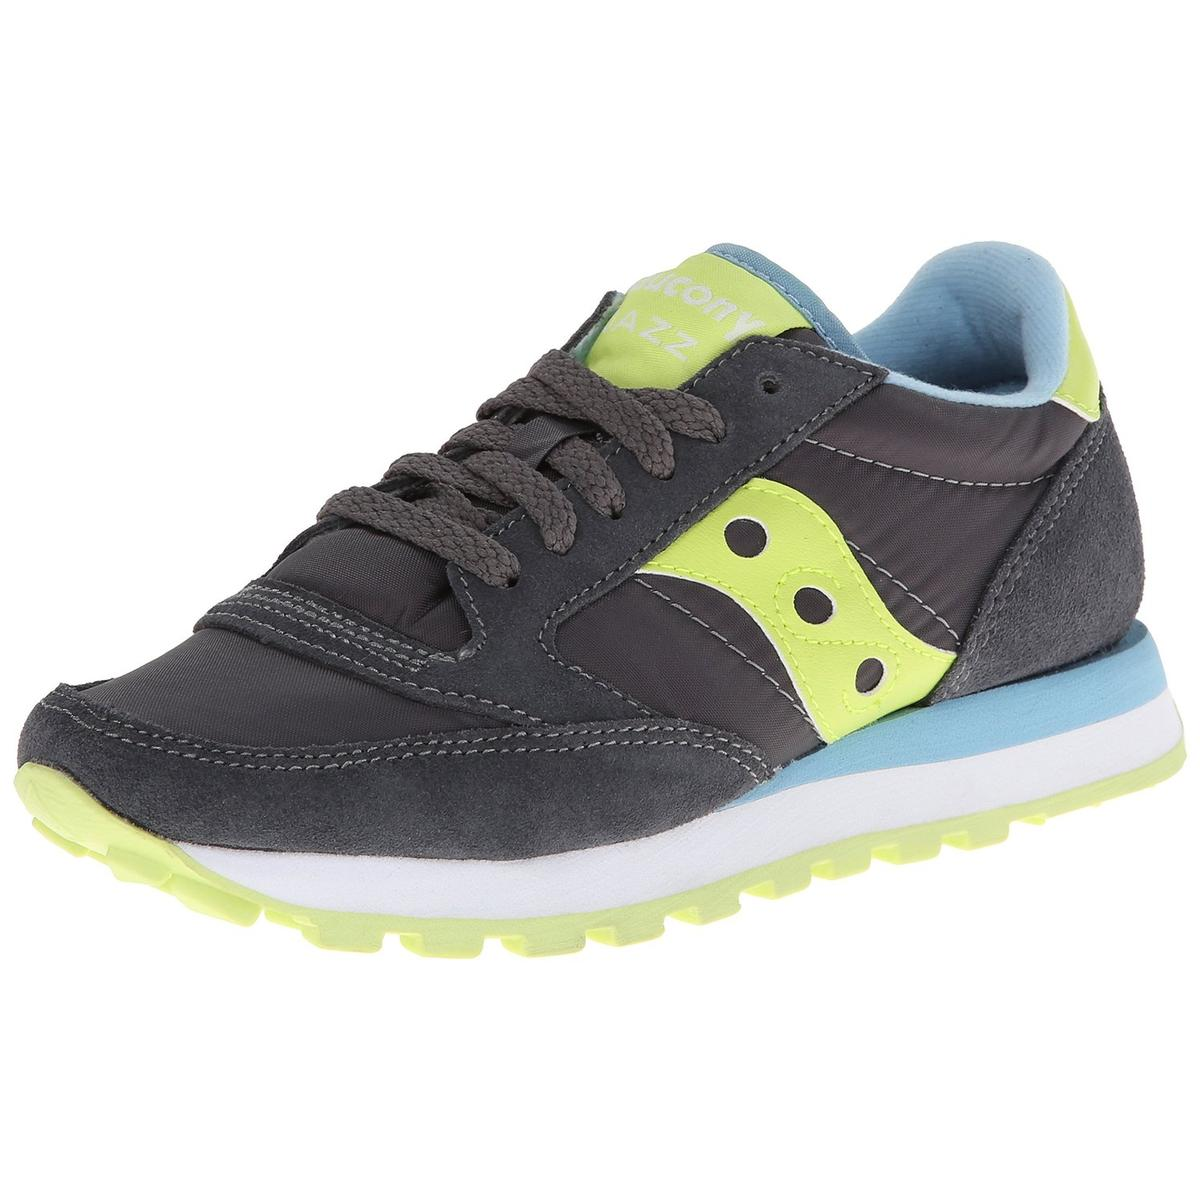 Saucony Jazz Original Womens Charcoal Light Sneakers by Saucony